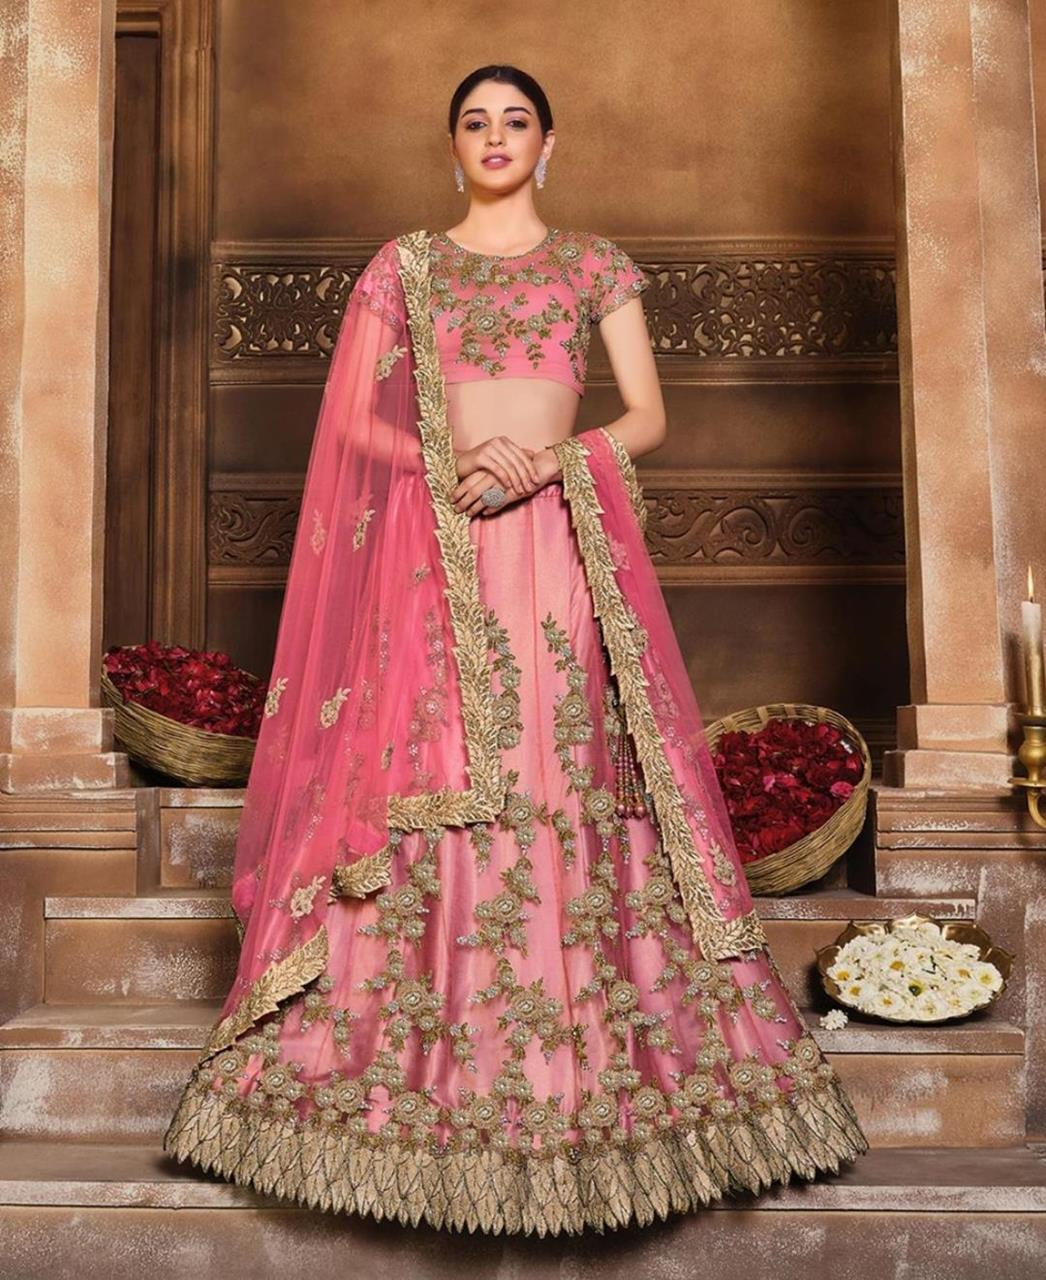 Sequins Satin Lehenga in Tomato Red